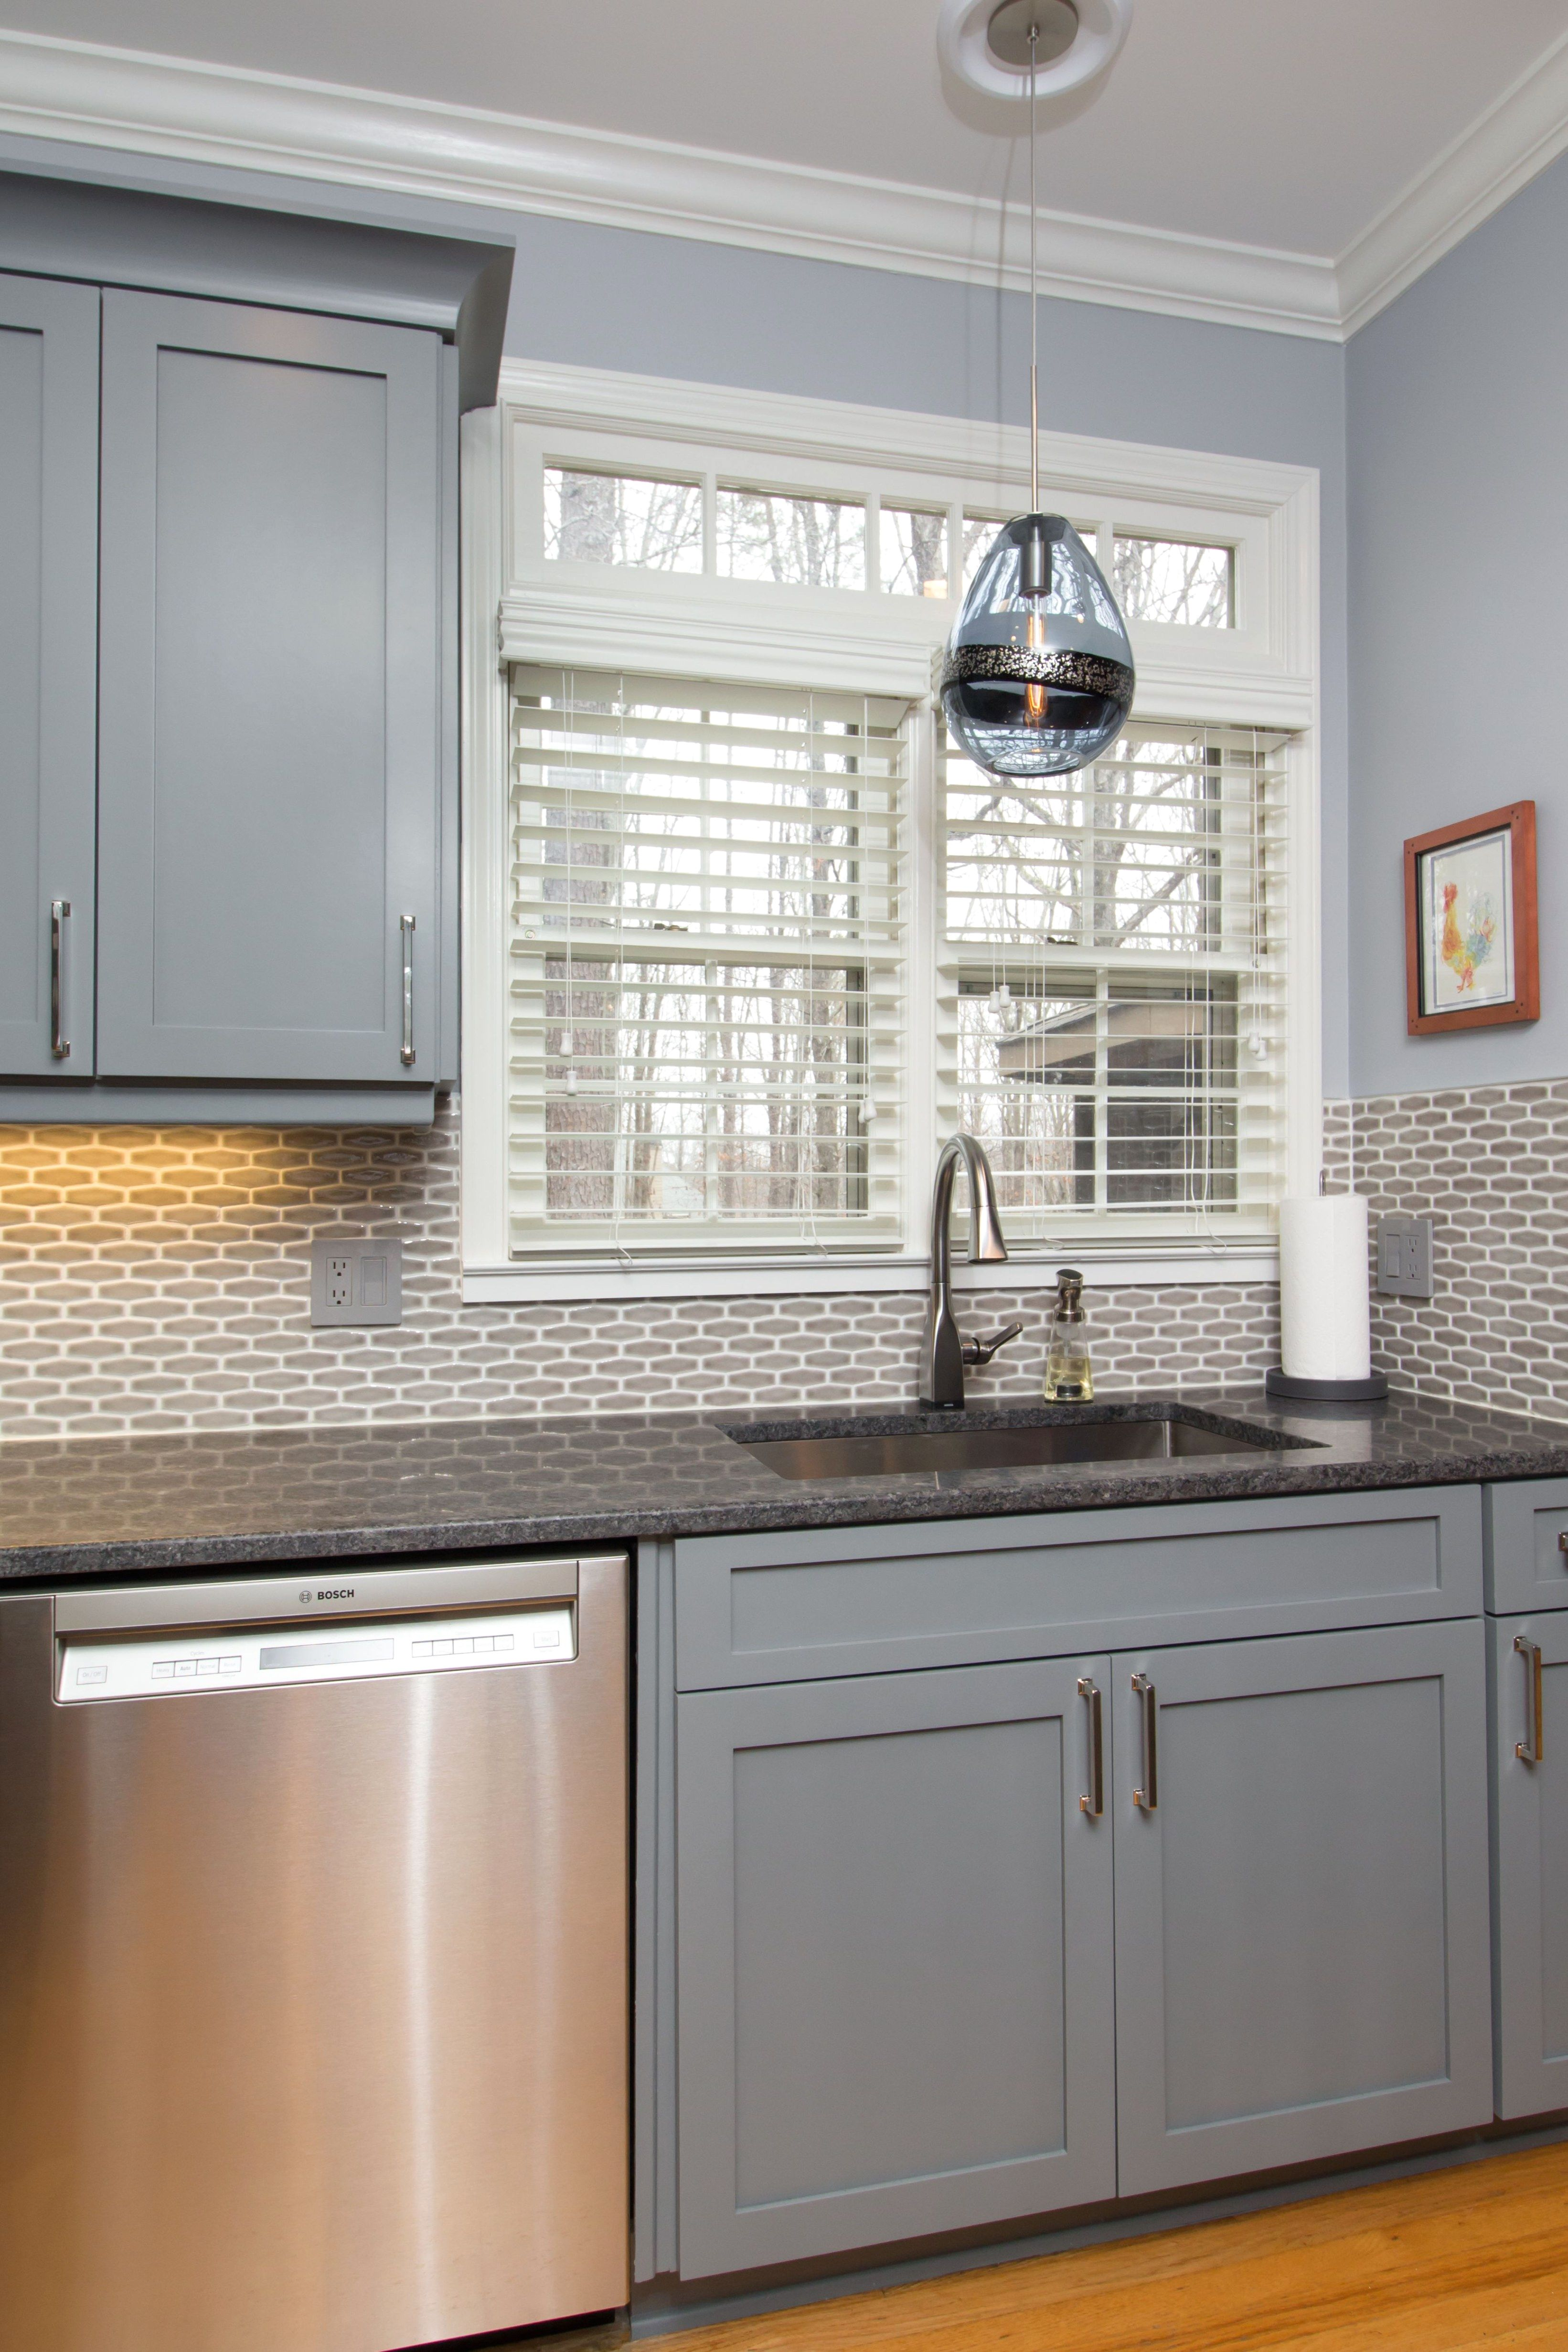 Do You Wish To Update Your Home Kitchen But Without Updating All Things In It By Simp Shaker Style Kitchen Cabinets Kitchen Cabinet Styles Kitchen Renovation